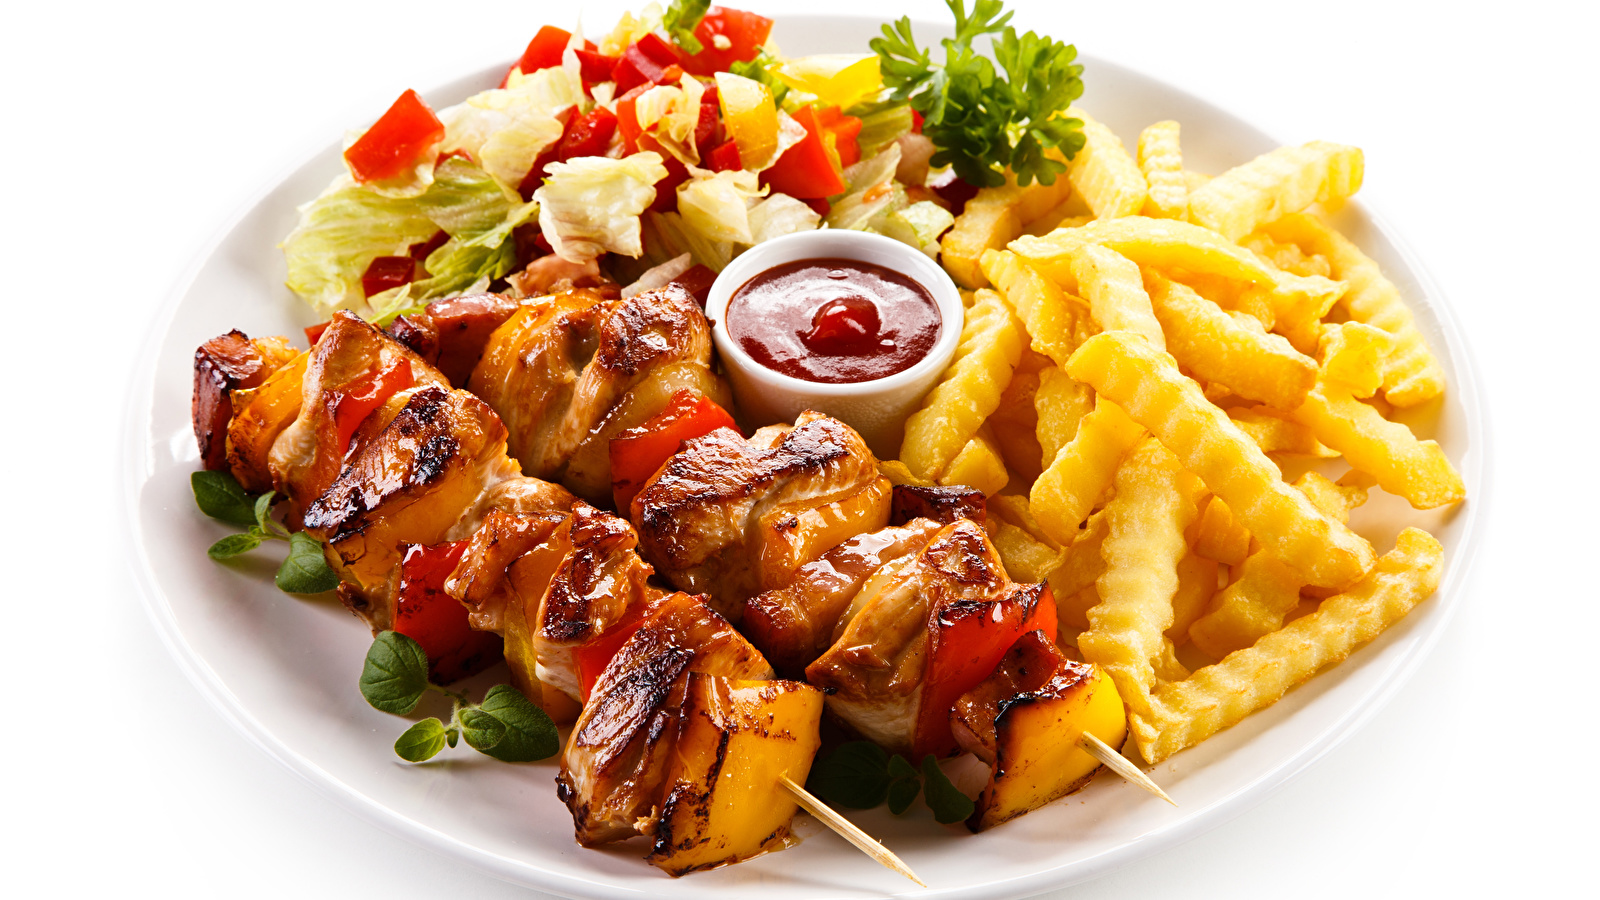 Images Shashlik French fries Ketchup Food Plate Meat 1600x900 1600x900